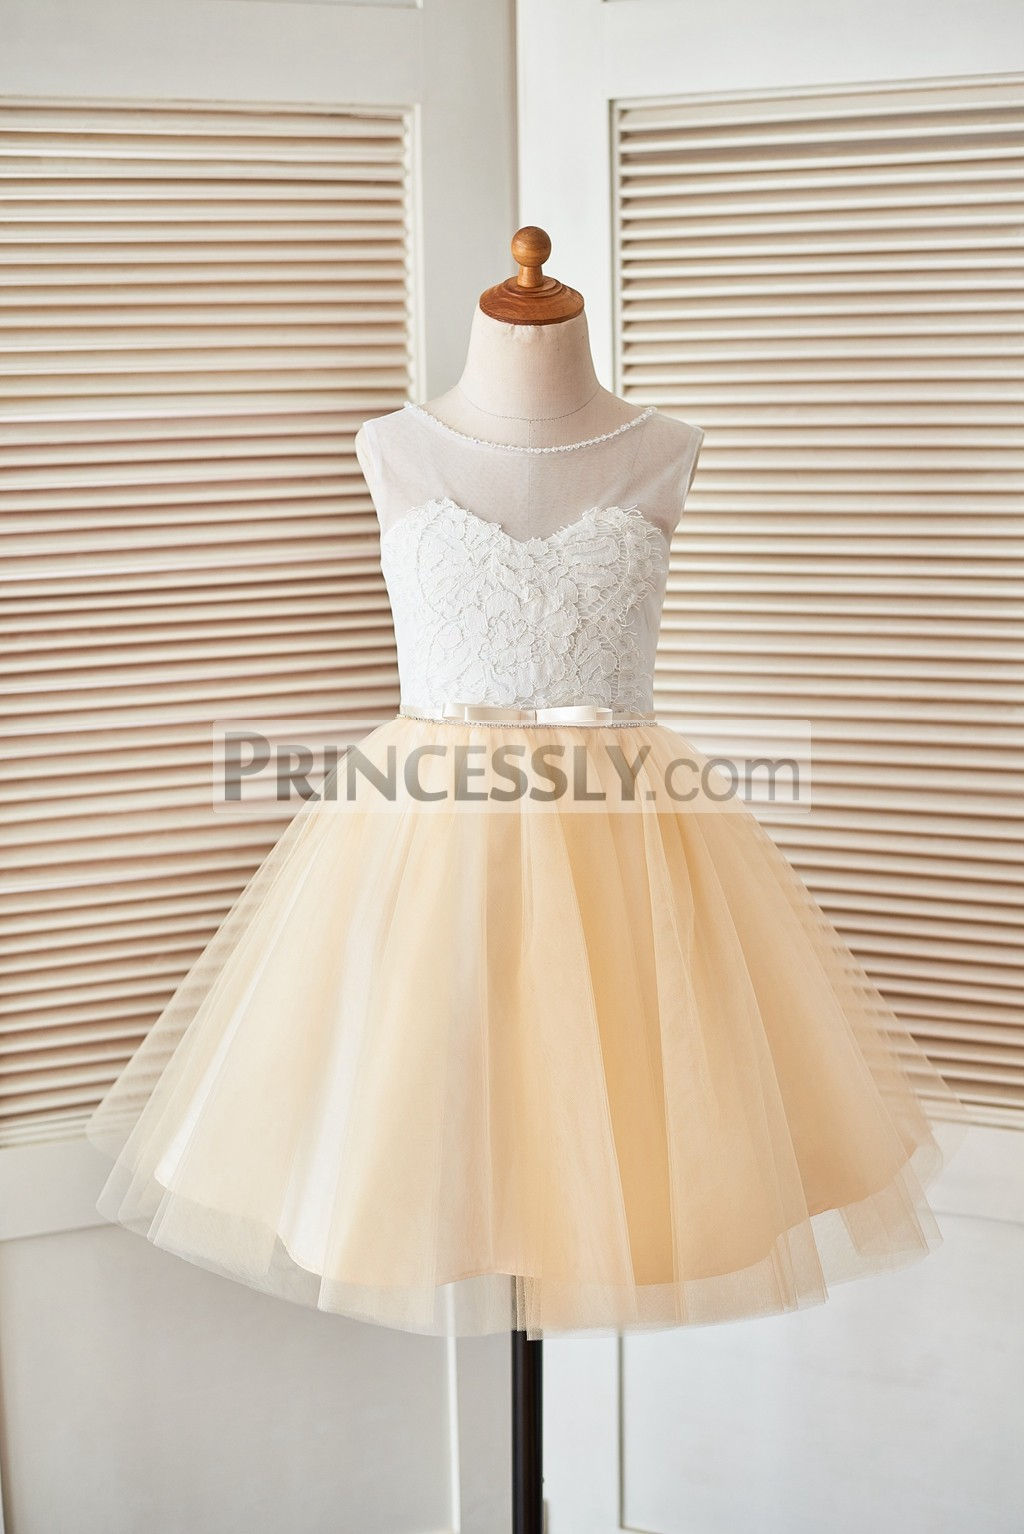 Sheer Ivory Lace Champagne Tulle Flower Girl Dress with Ribbon